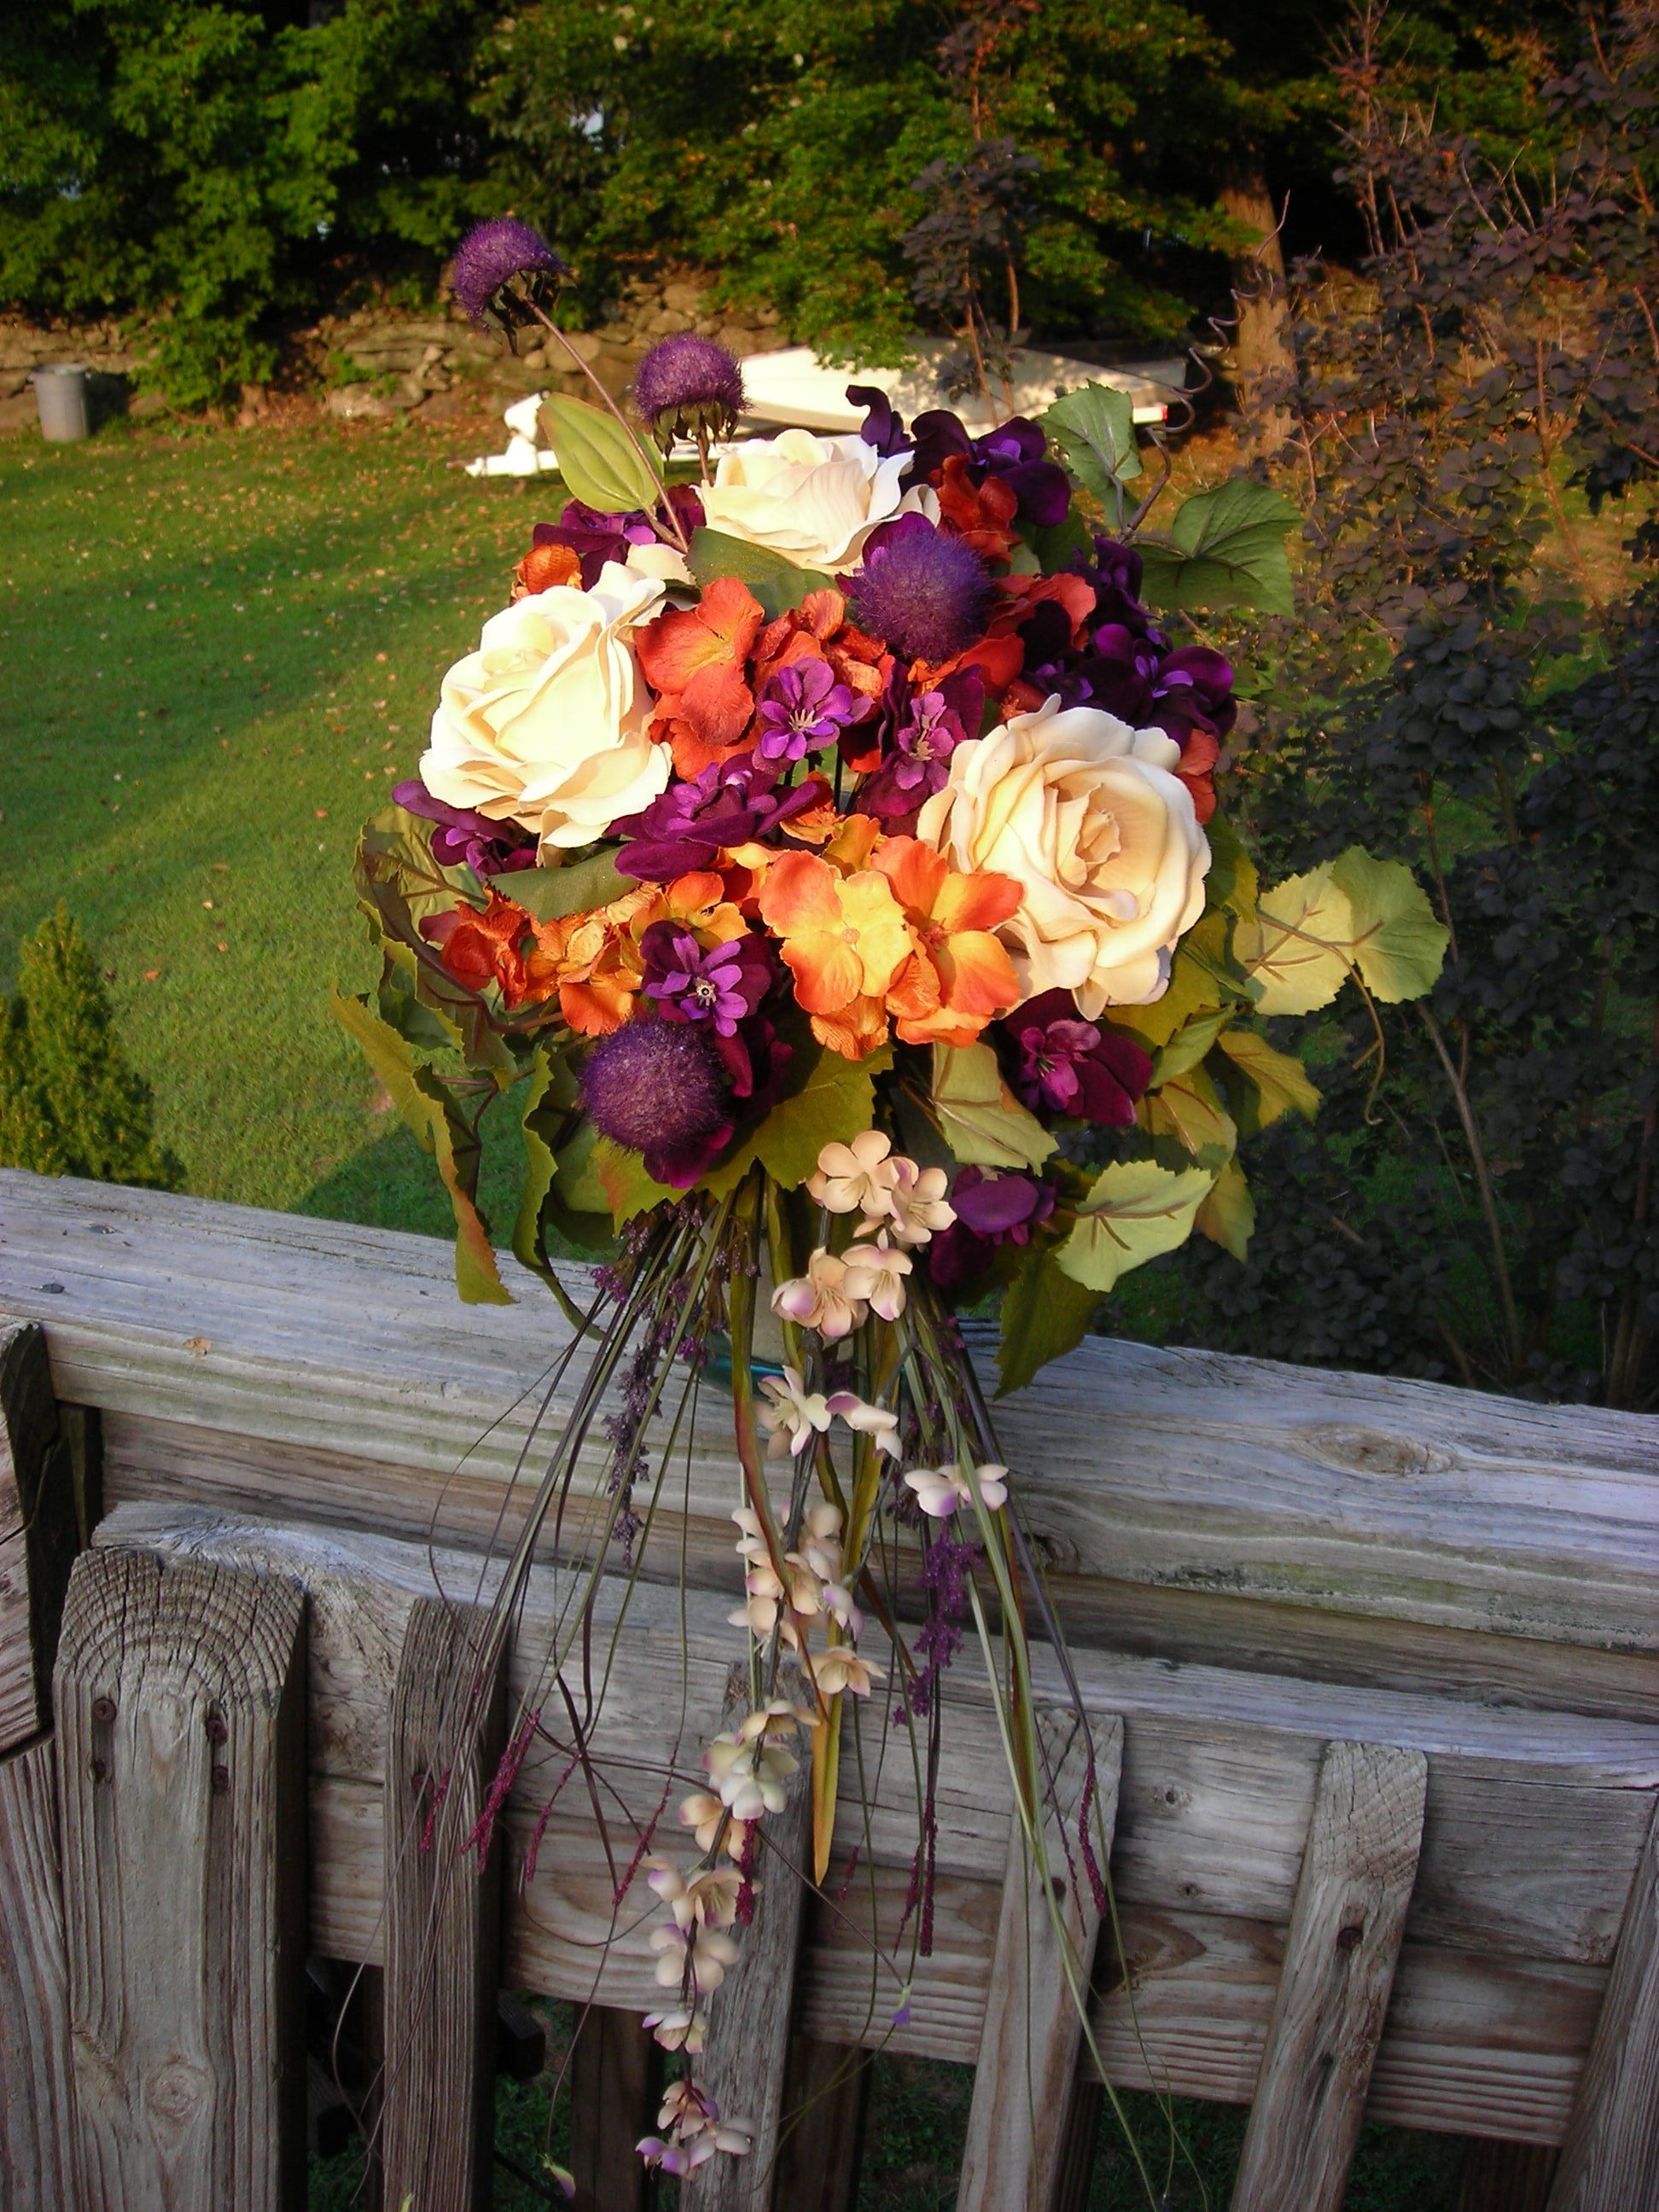 Brides Bouquet For A Beautiful October Wedding Hmm Now I M Wanting A Fall Wedding Fall Flower Wedding Bouquets Fall Wedding Boquets Fall Wedding Flowers